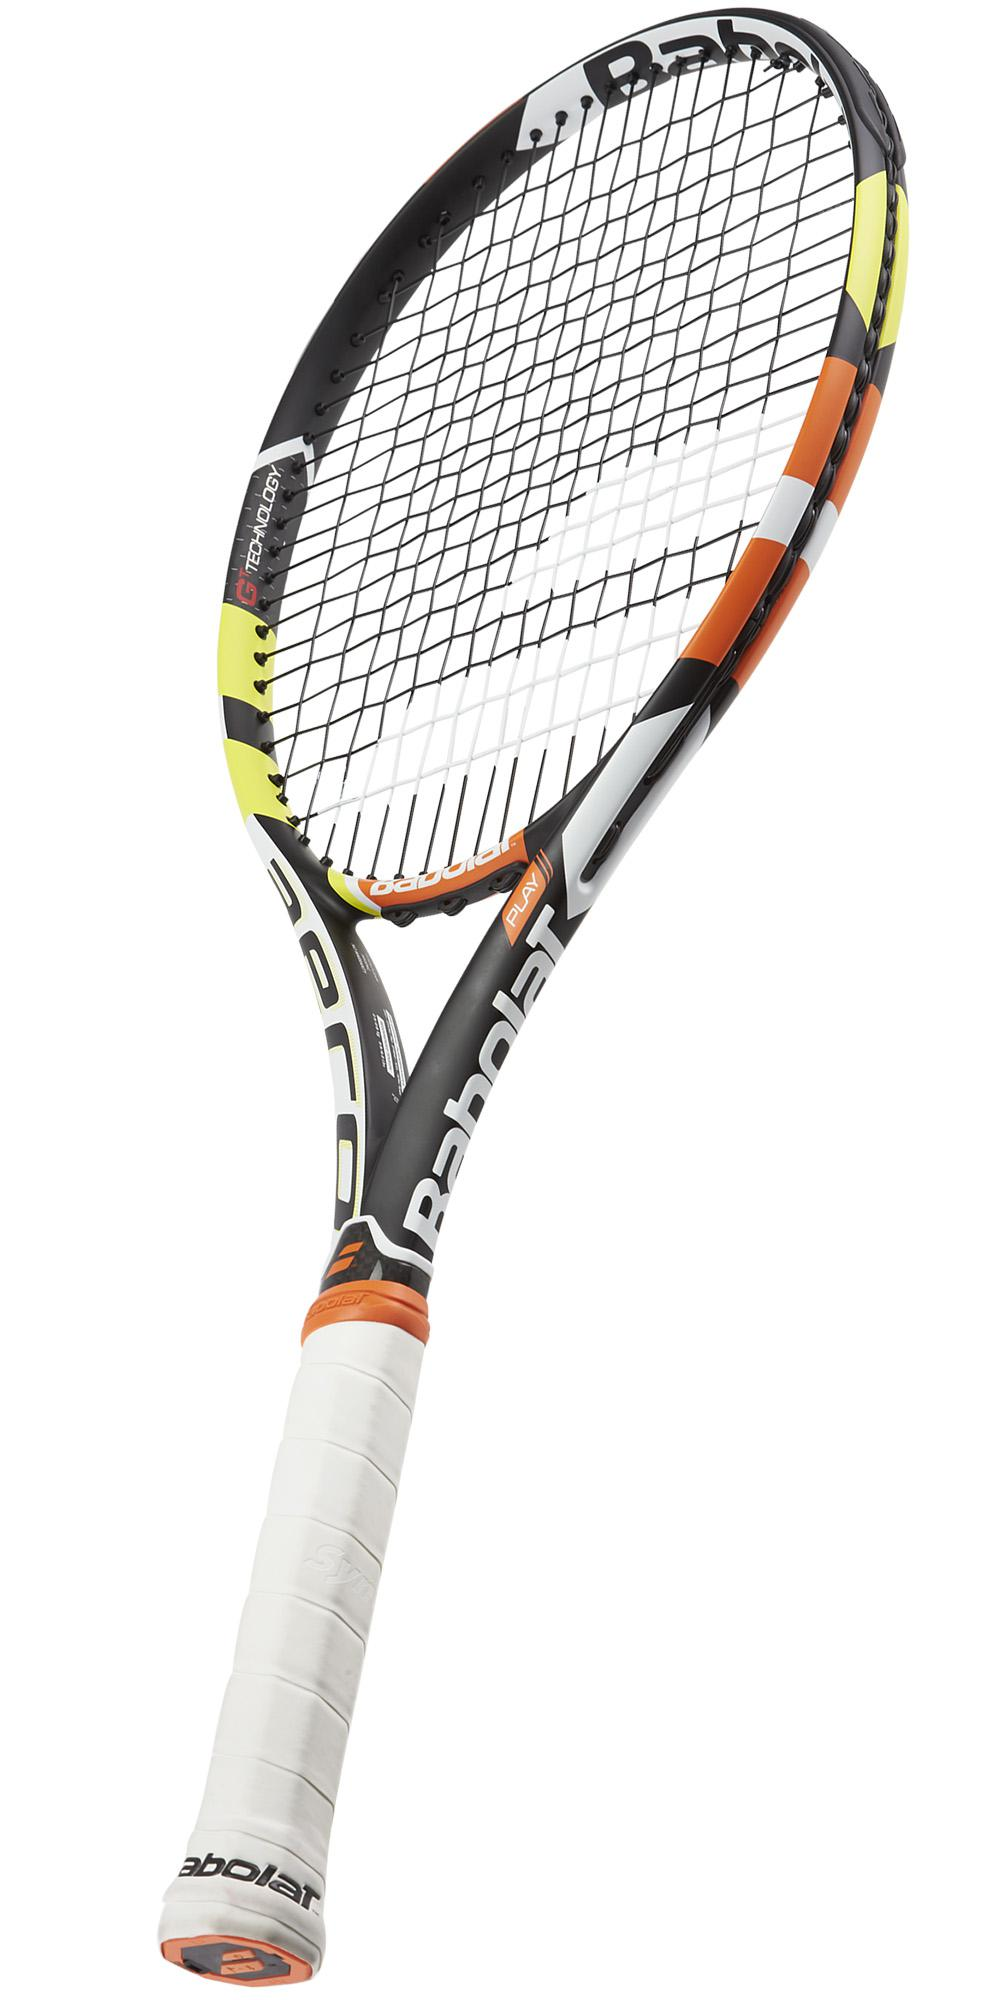 babolat play how to unpair racket